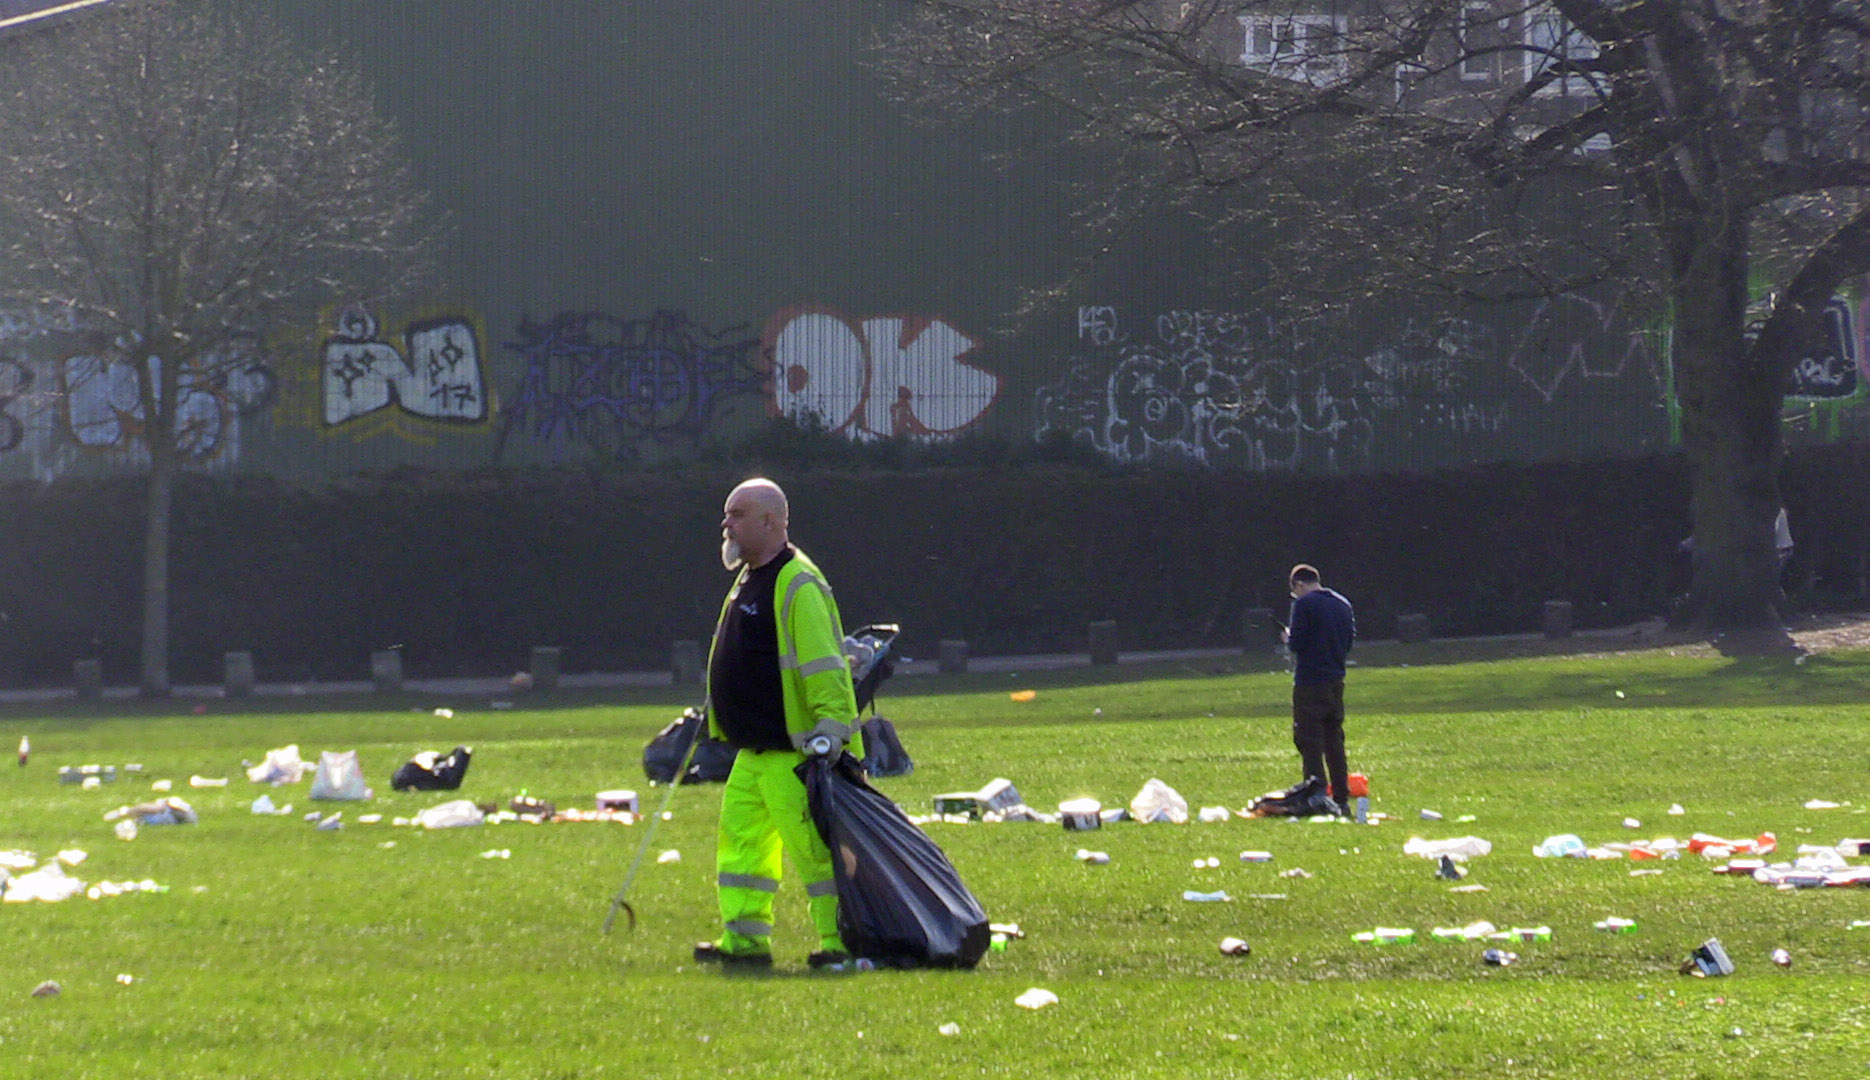 <p>People clearing up in Endcliffe Park, Sheffield, after yesterday's warm weather and the easing of England's lockdown restrictions saw groups of people congregating in parks, raising social distancing concerns. Picture date: Wednesday March 31, 2021.</p>